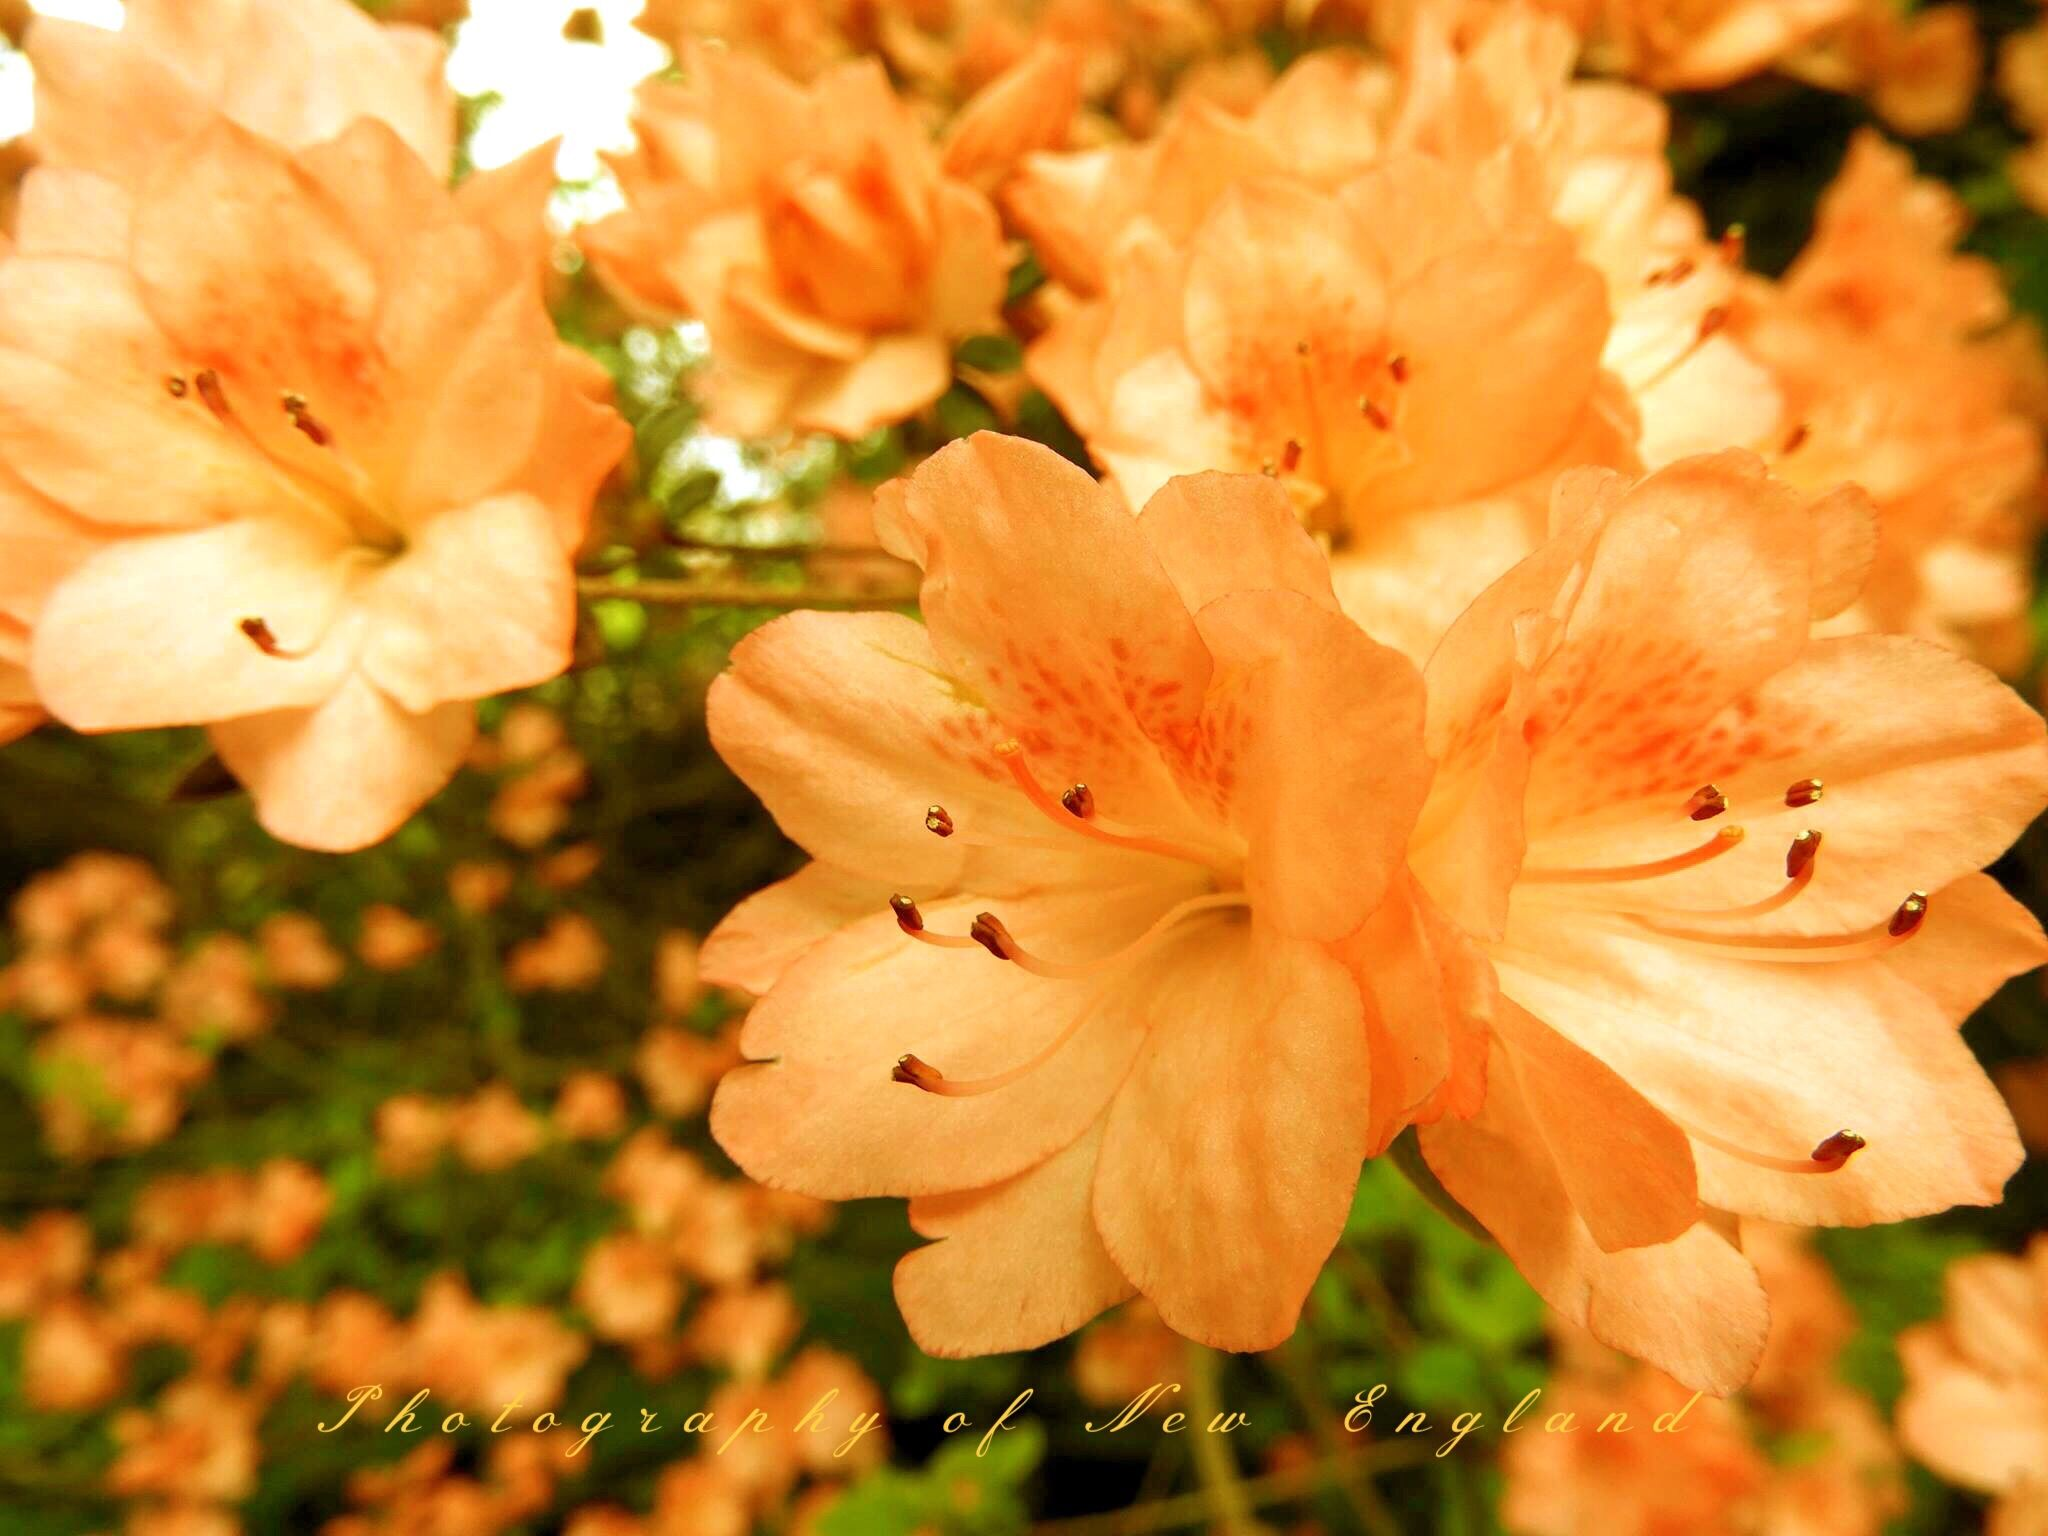 Azalea Nature photography, Flowers